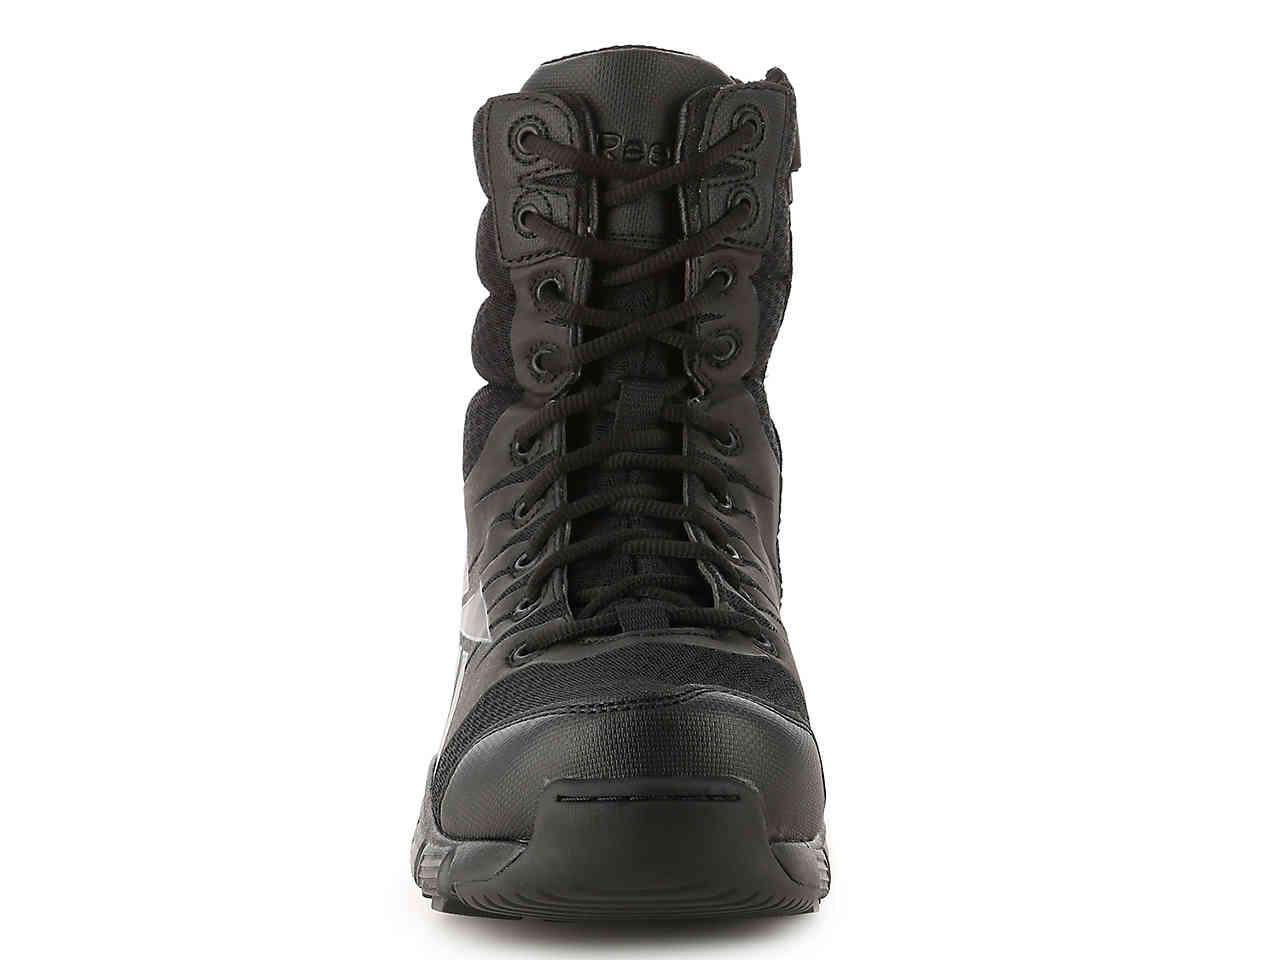 5467191f942929 Lyst - Reebok Dauntless Ultra Light Work Boot in Black for Men